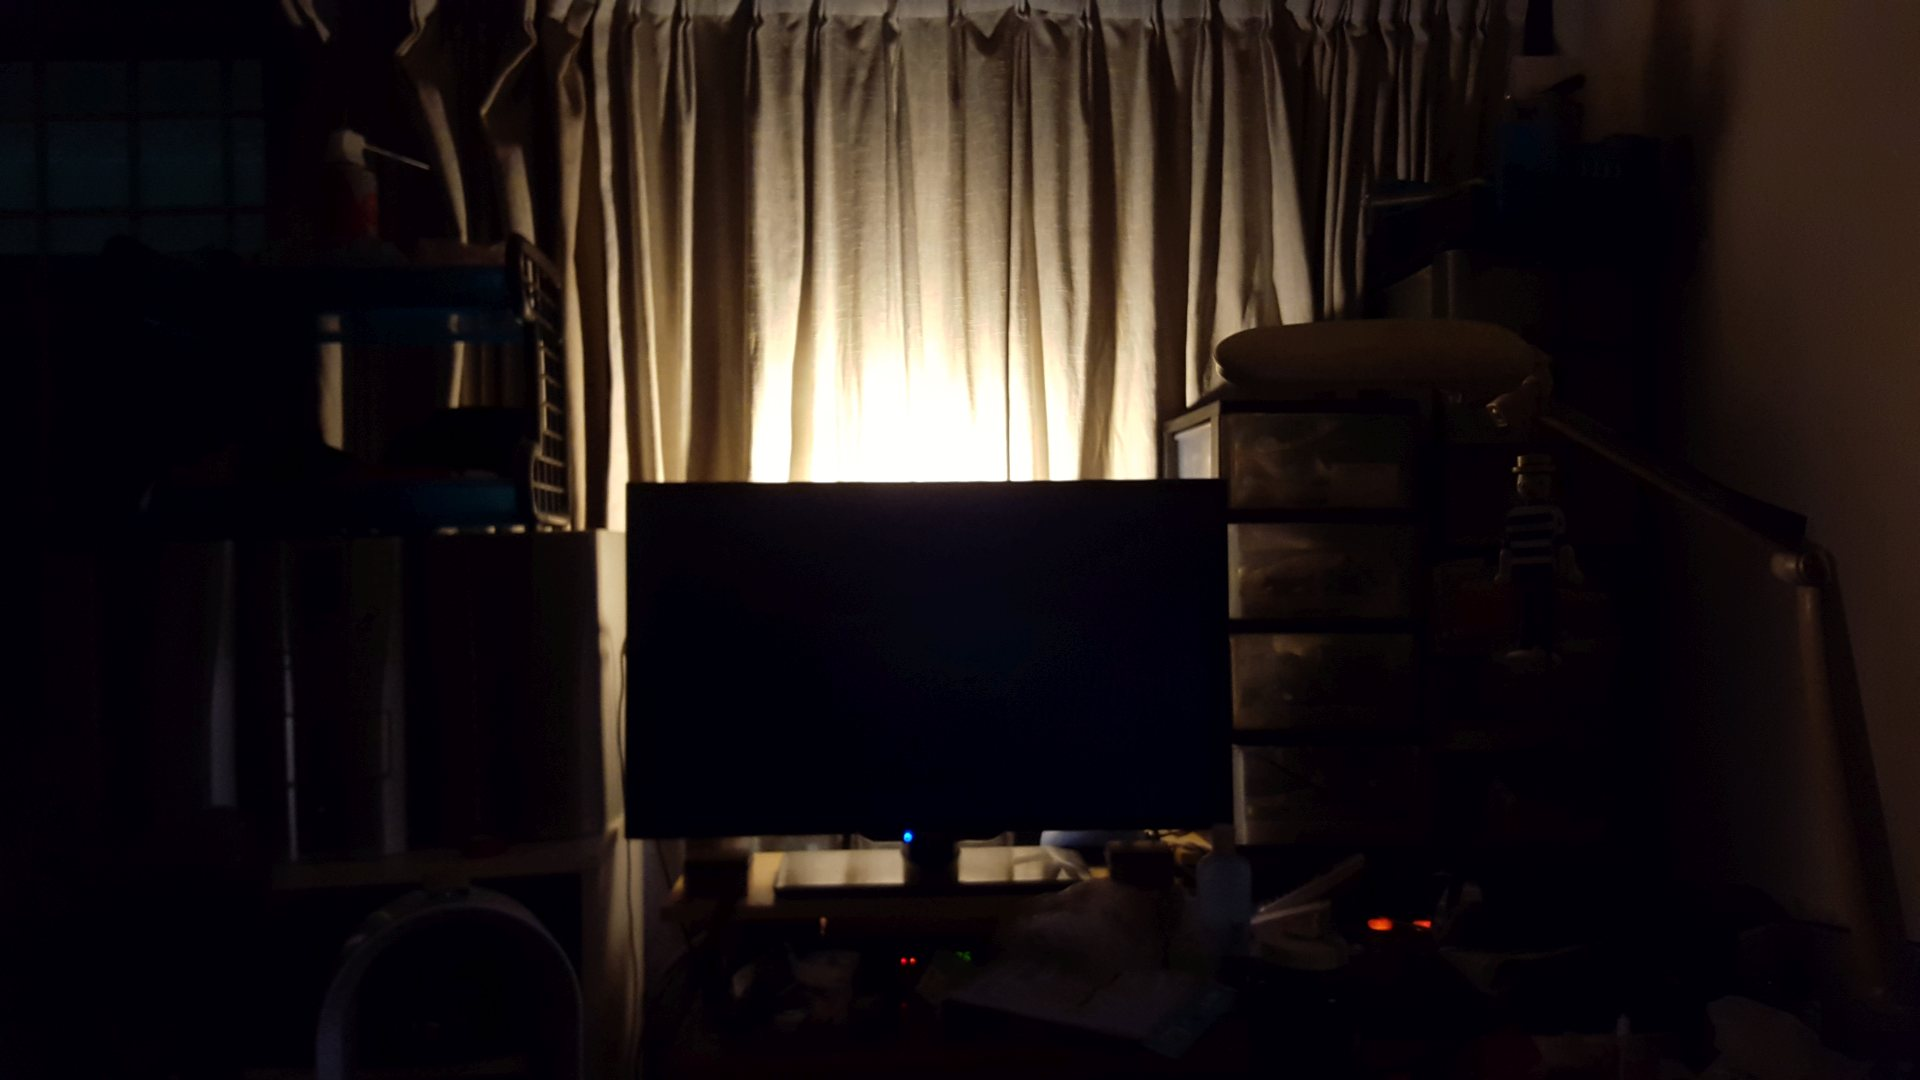 Bias Lighting A Better TV Viewing Experience Describee - Bedroom lights off